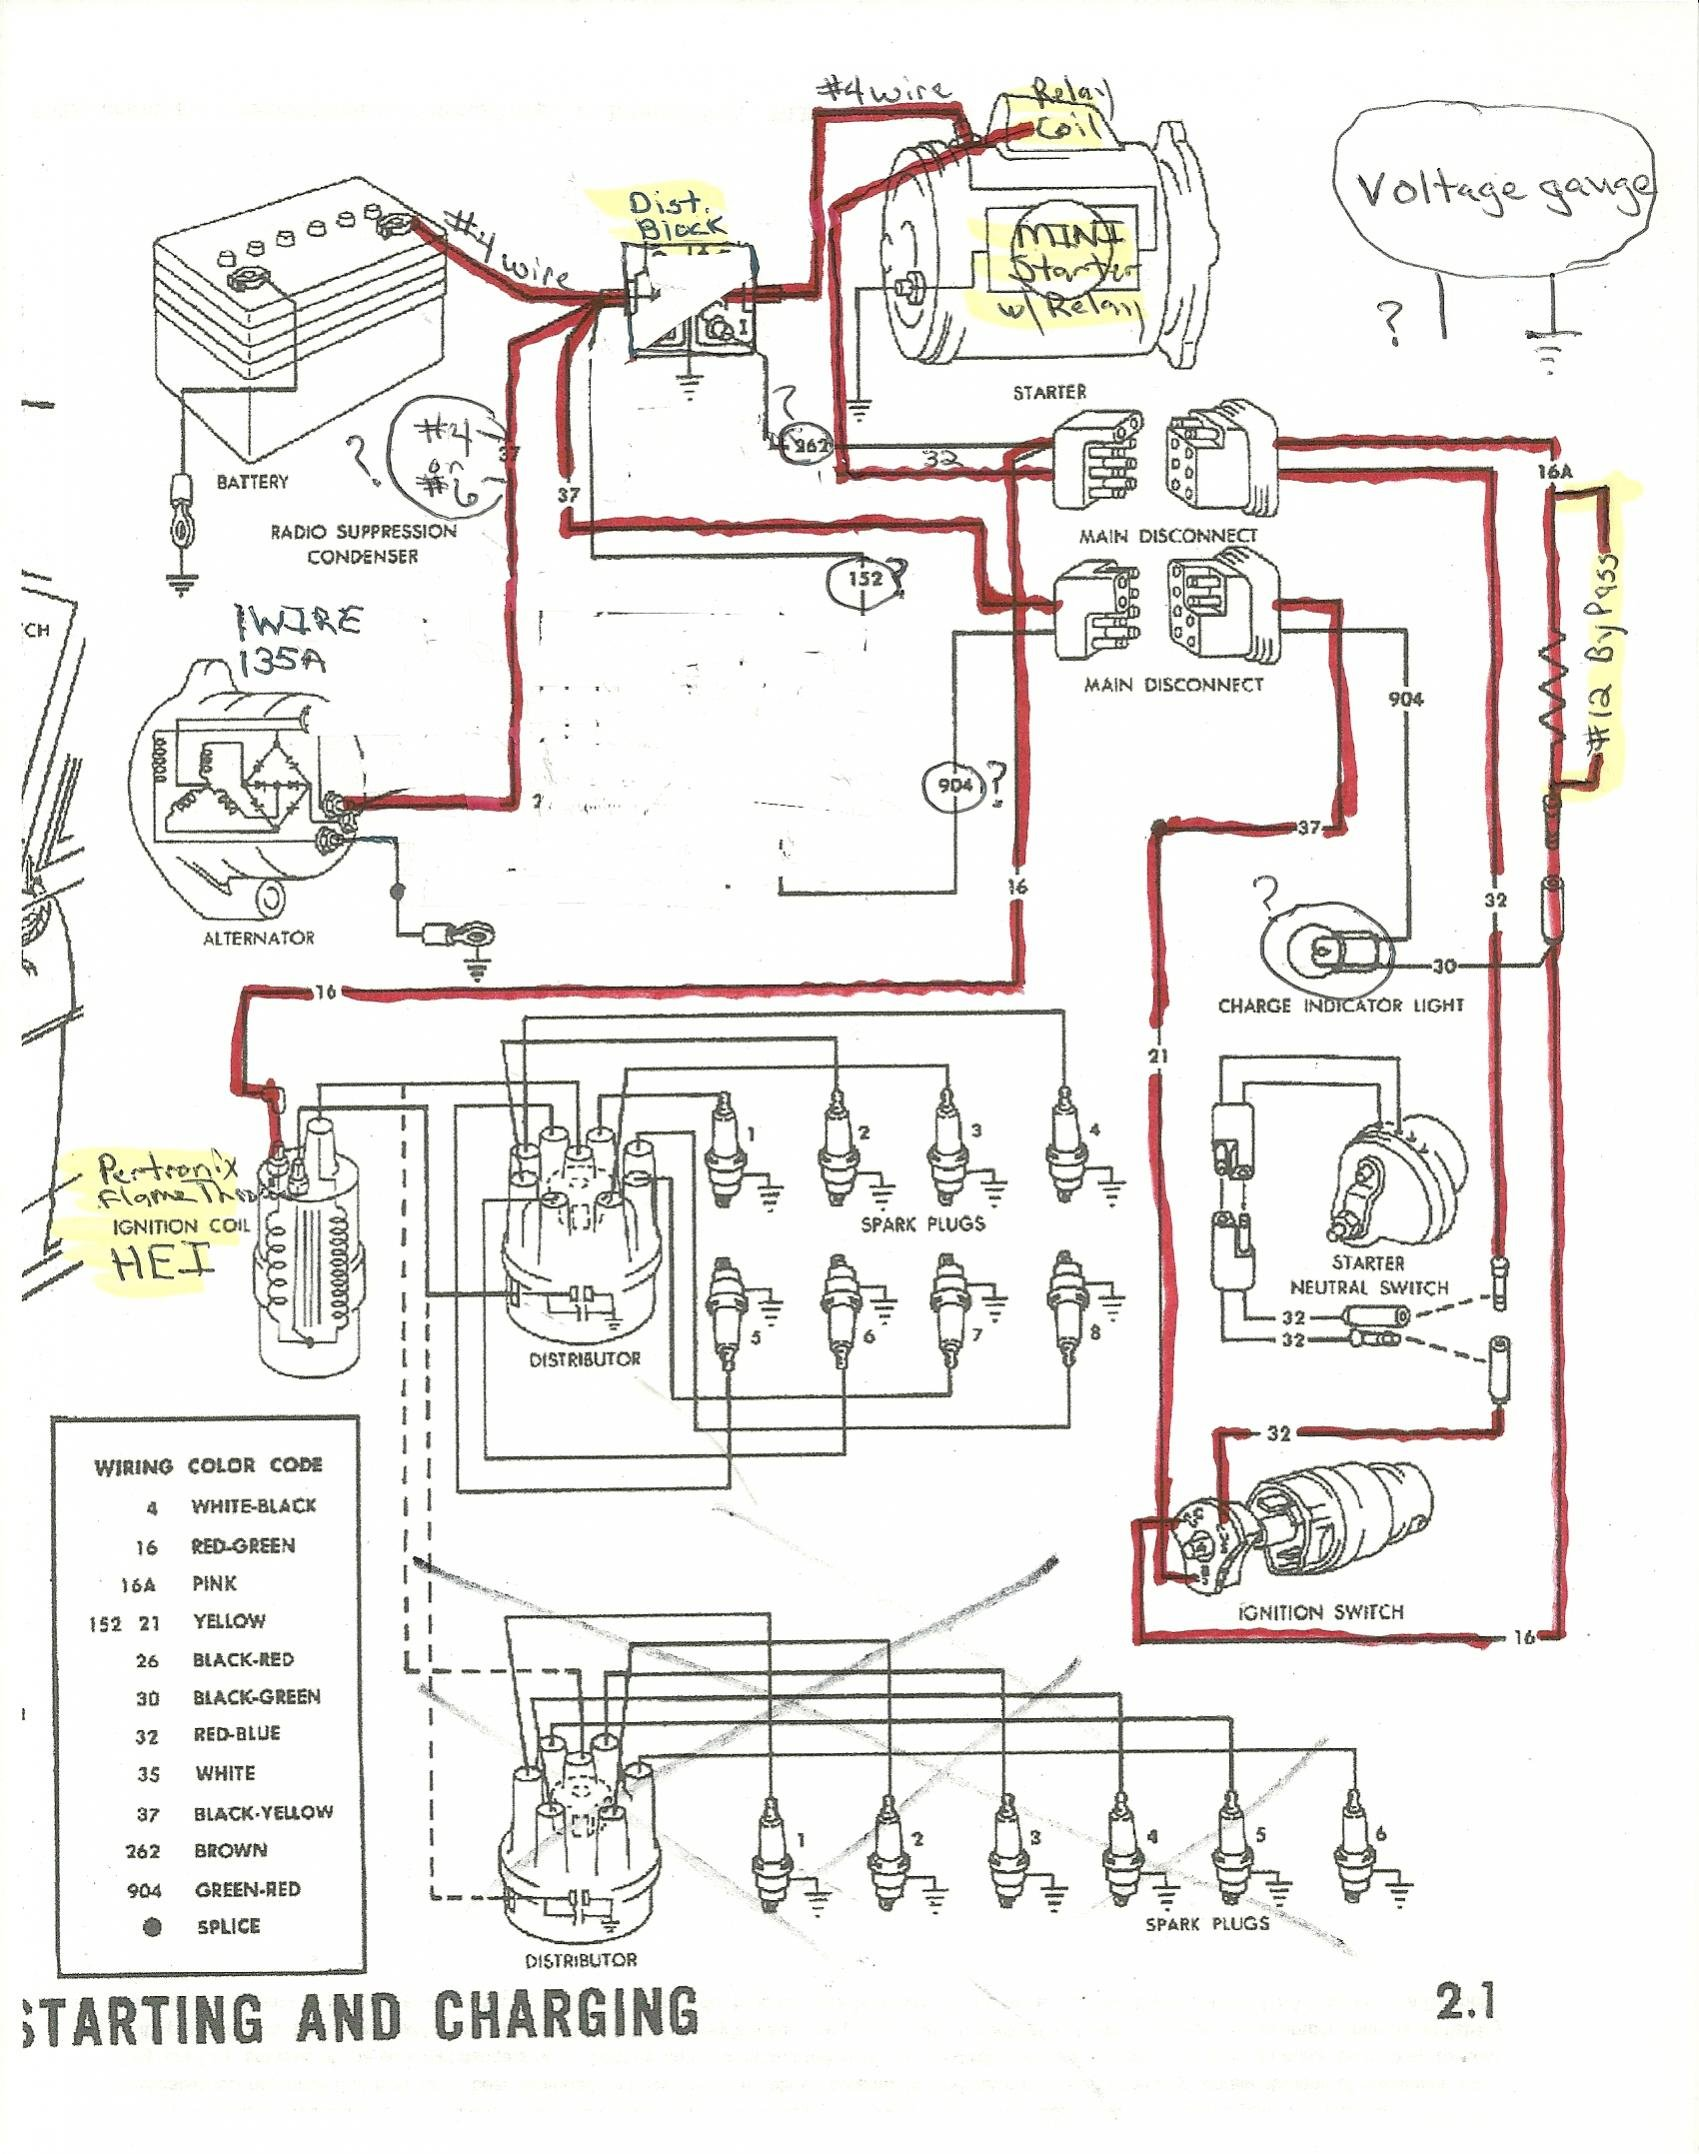 hight resolution of 1965 ford alternator wiring wiring diagram 1965 ford falcon alternator wiring diagram 1965 ford alternator wiring